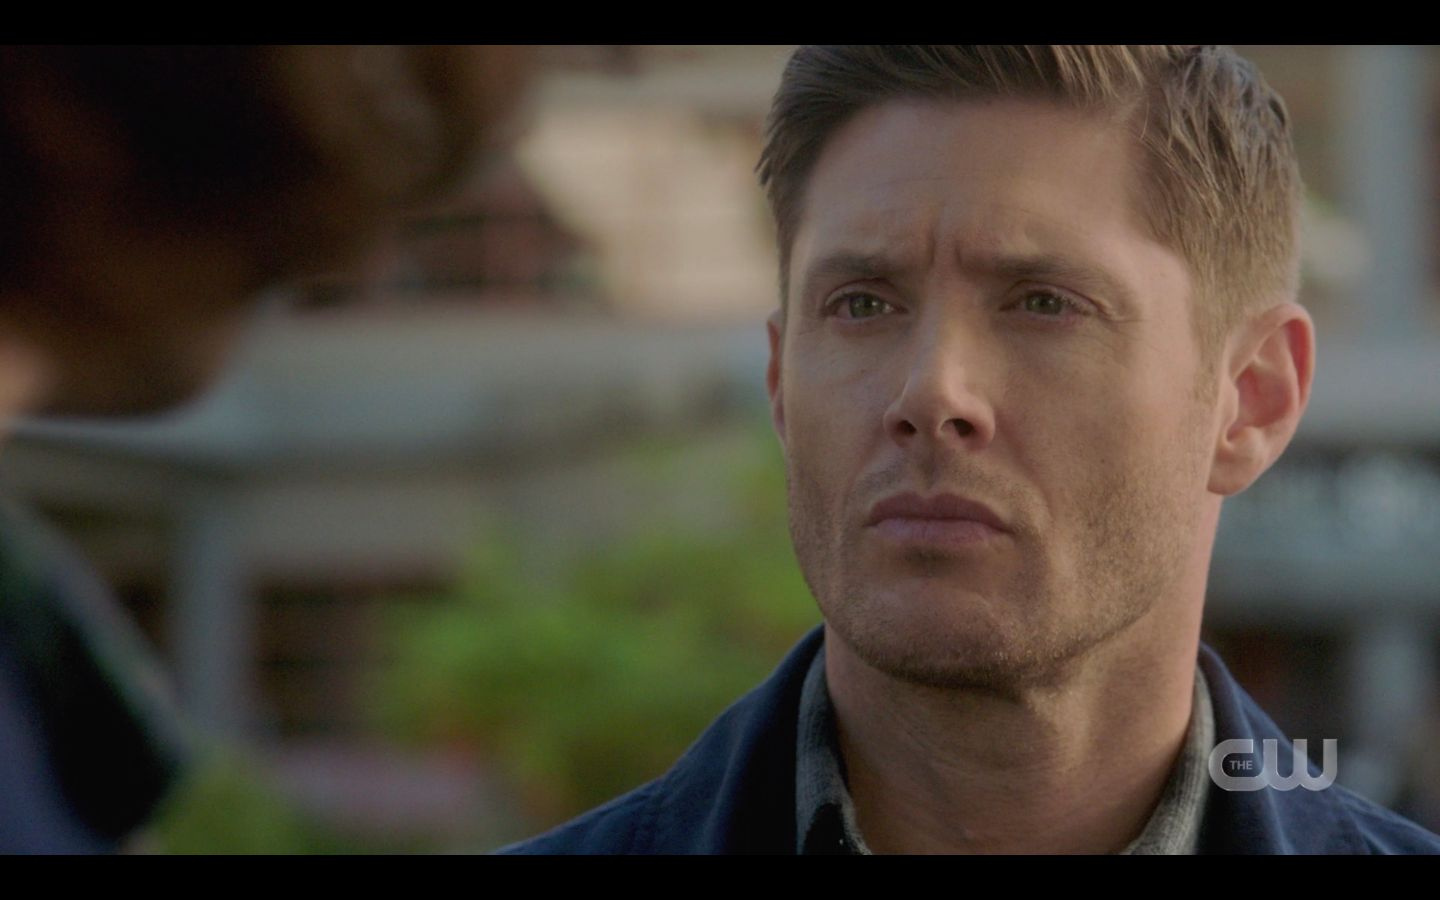 Dean listening to Sam about saving people SPN 1501